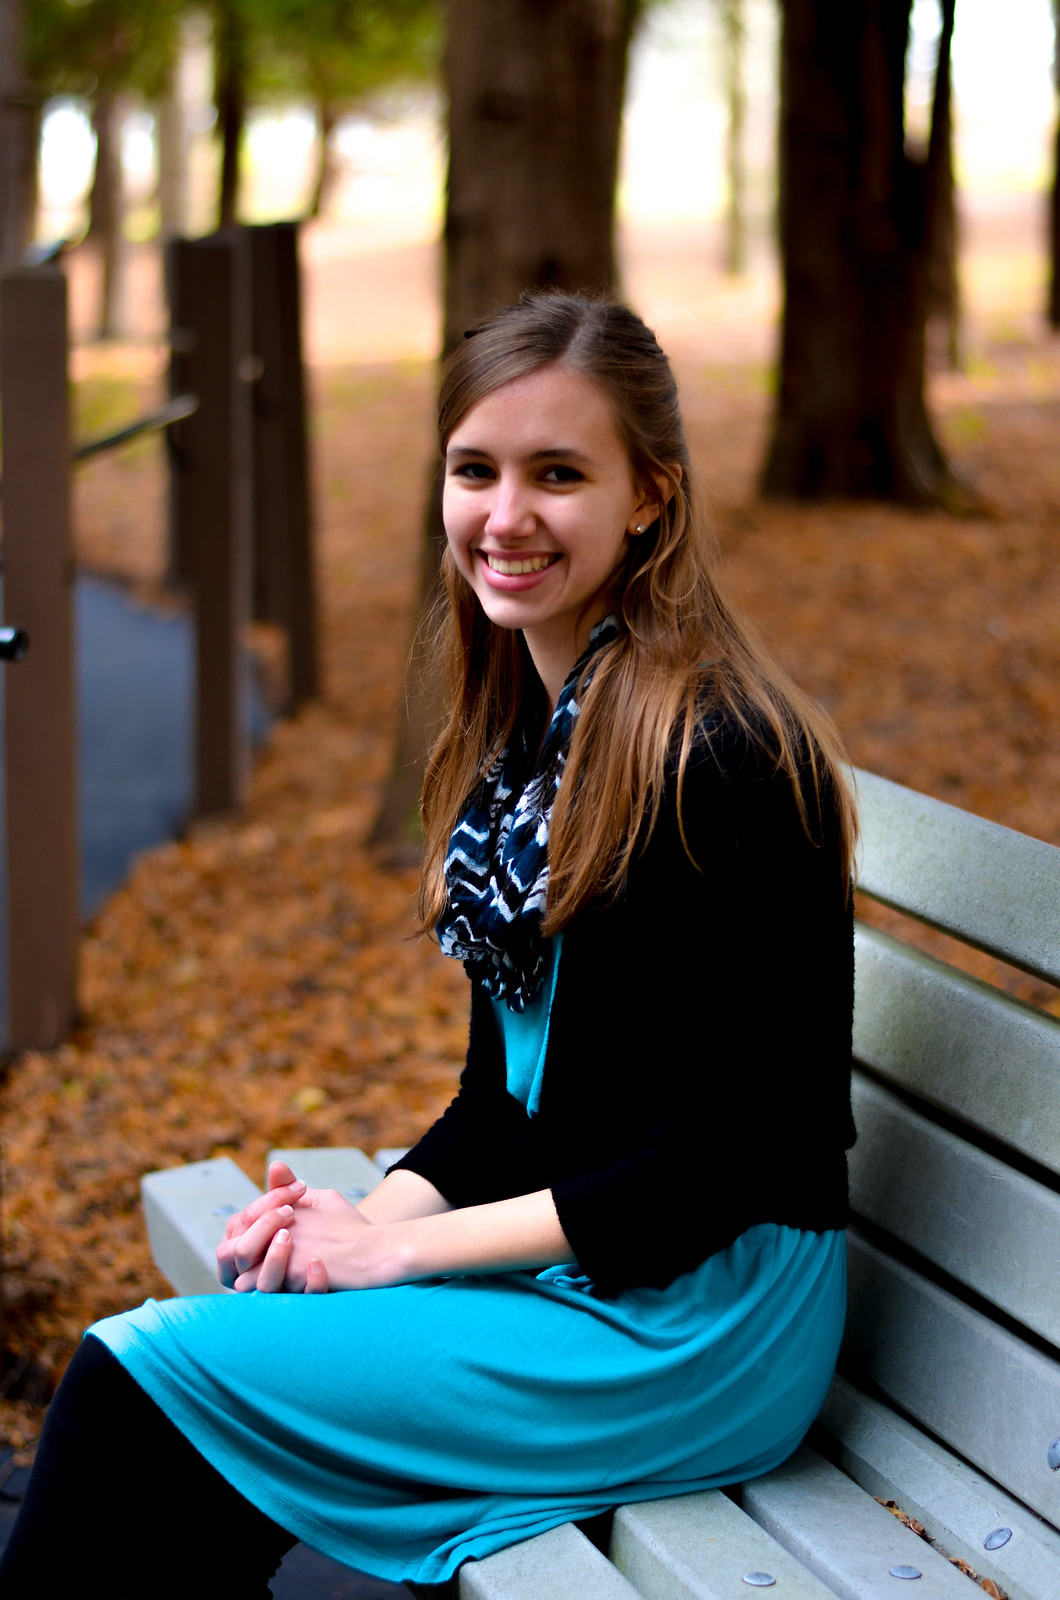 Abigail | Senior (Fall 2013)